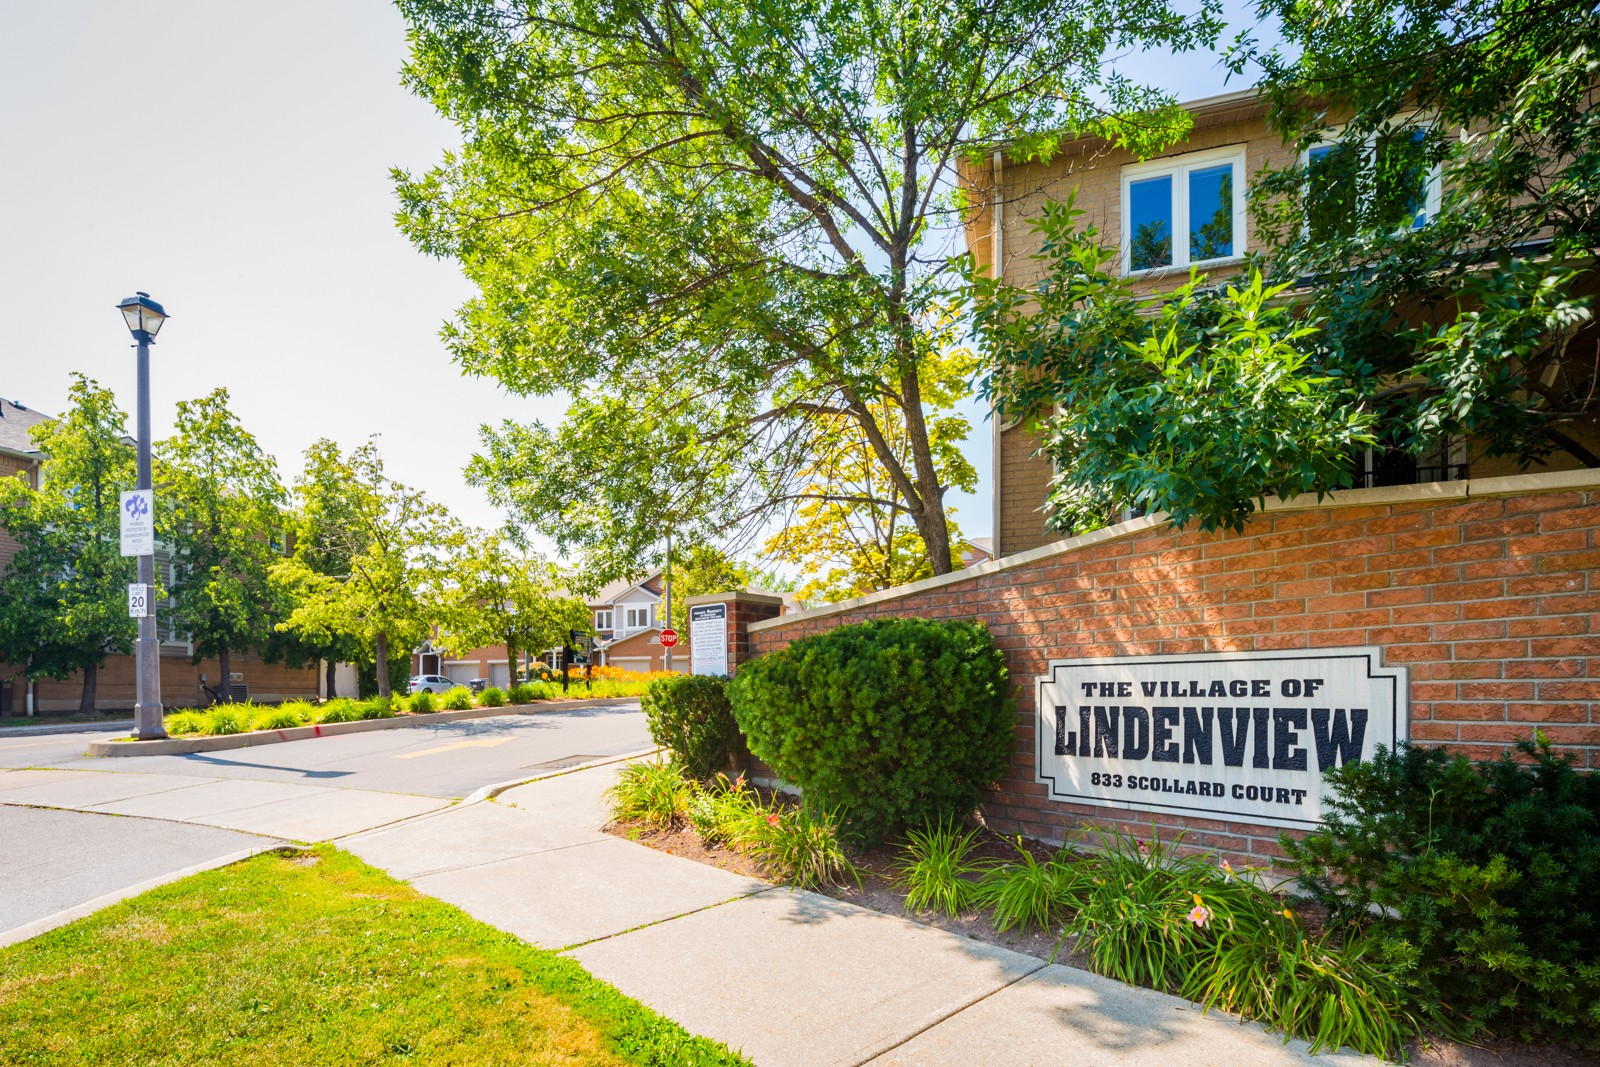 The Village of Lindenview at 833 Scollard Crt, Mississauga 0